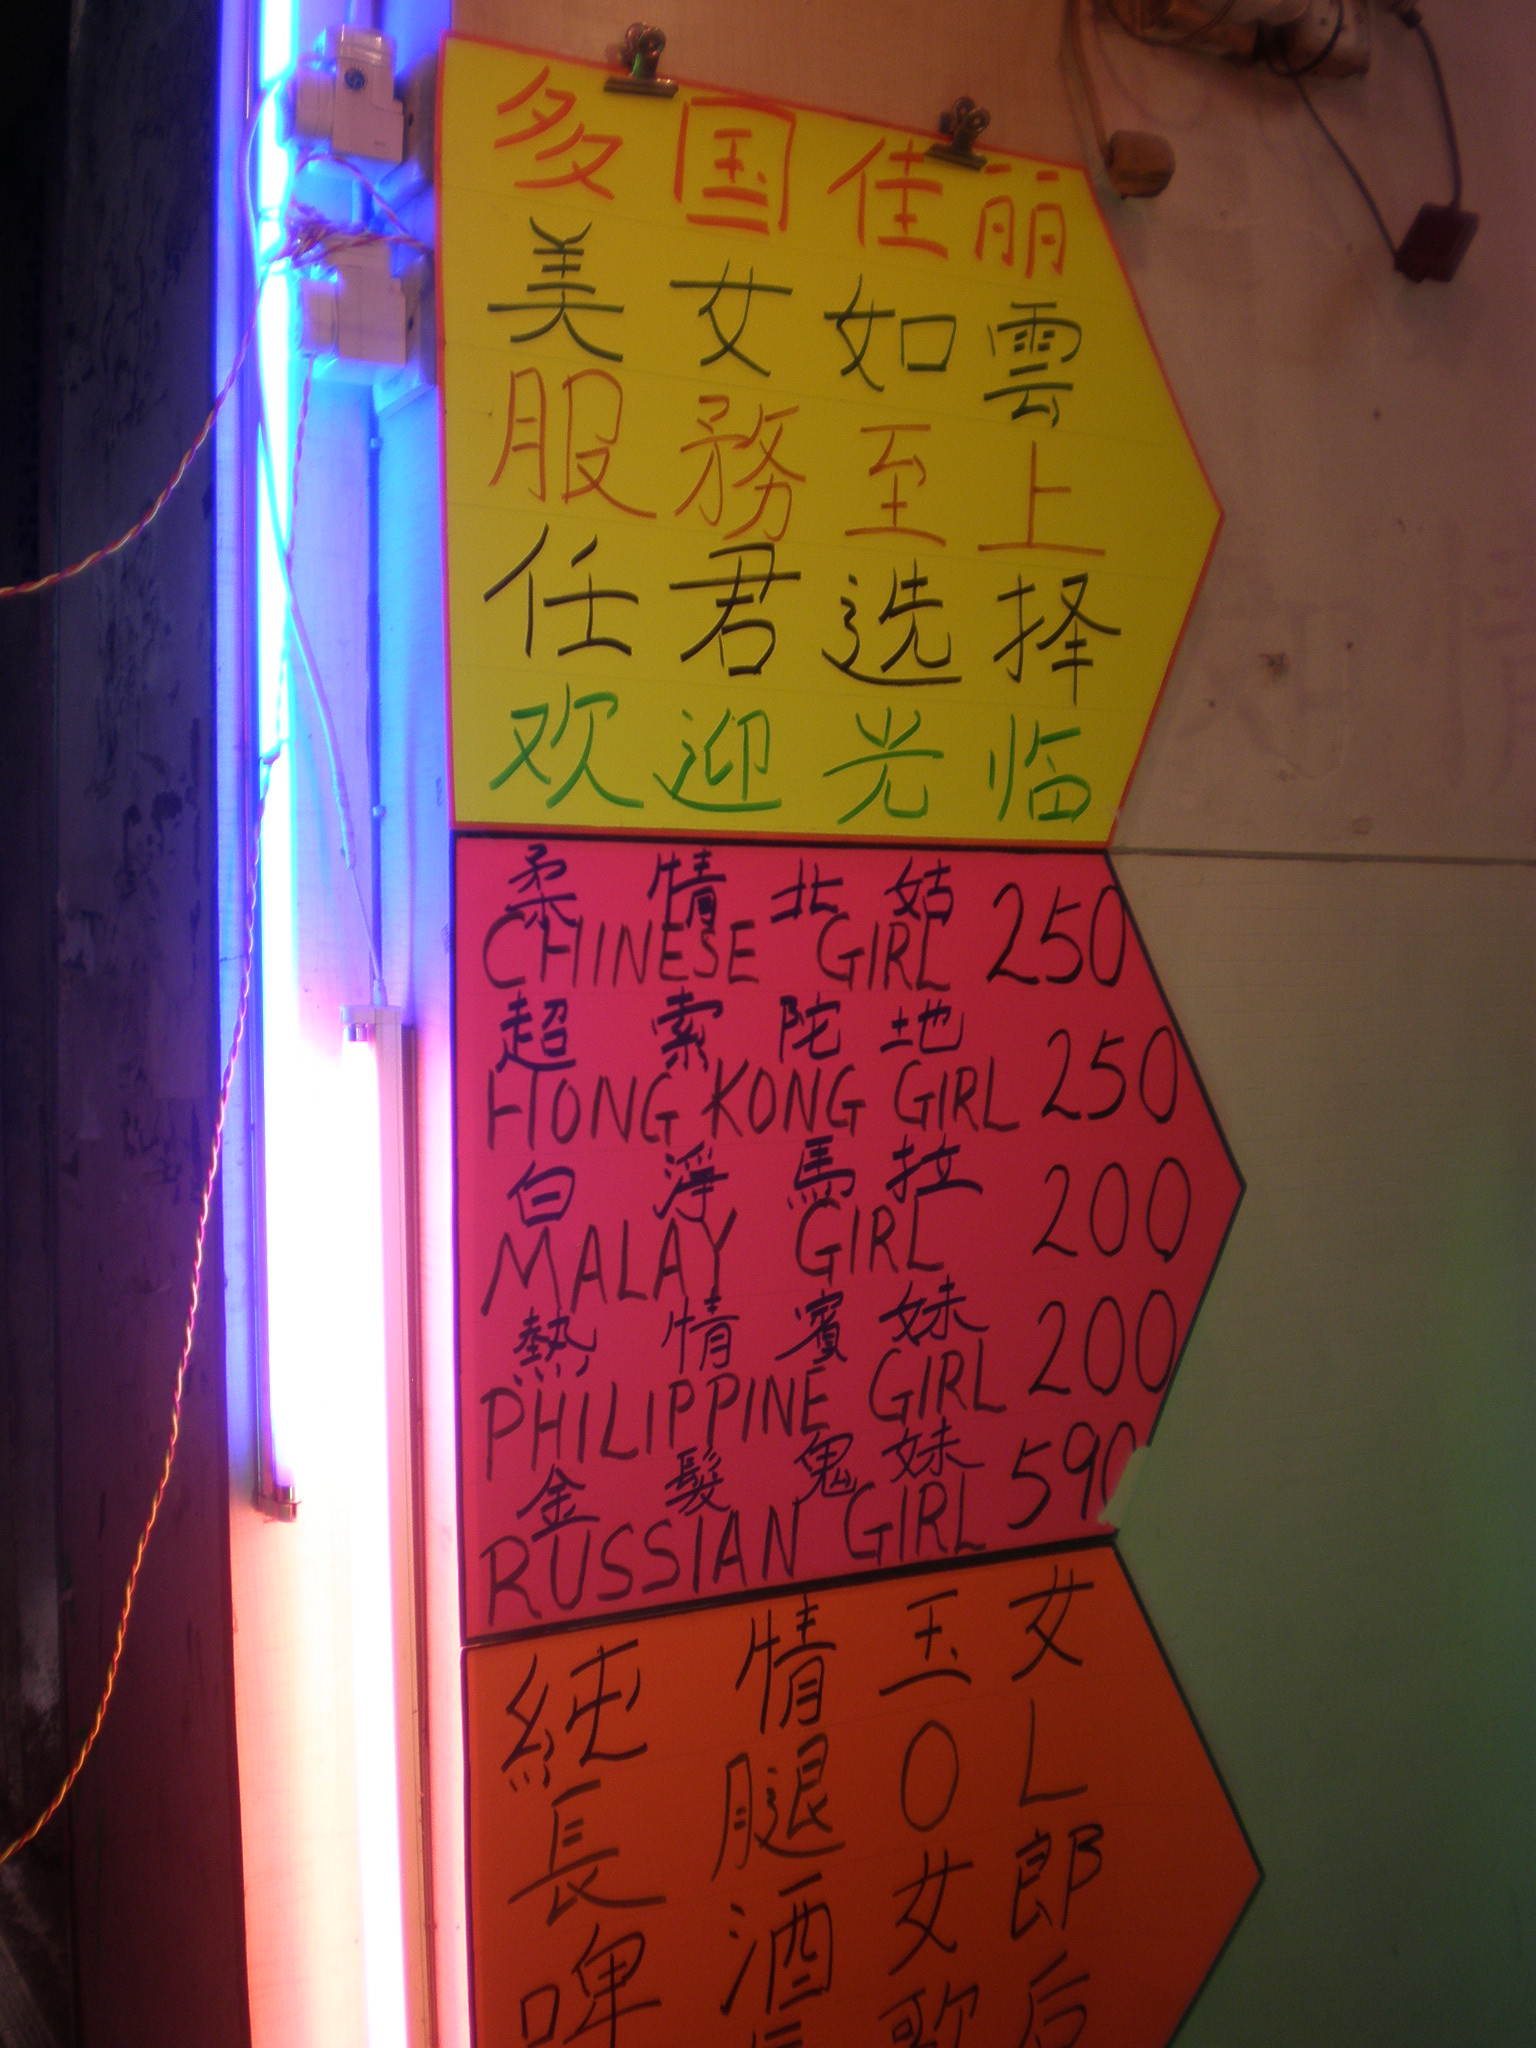 Brothel_price_sign_for_various_nationalities_on_Soy_St.,_HK.JPG